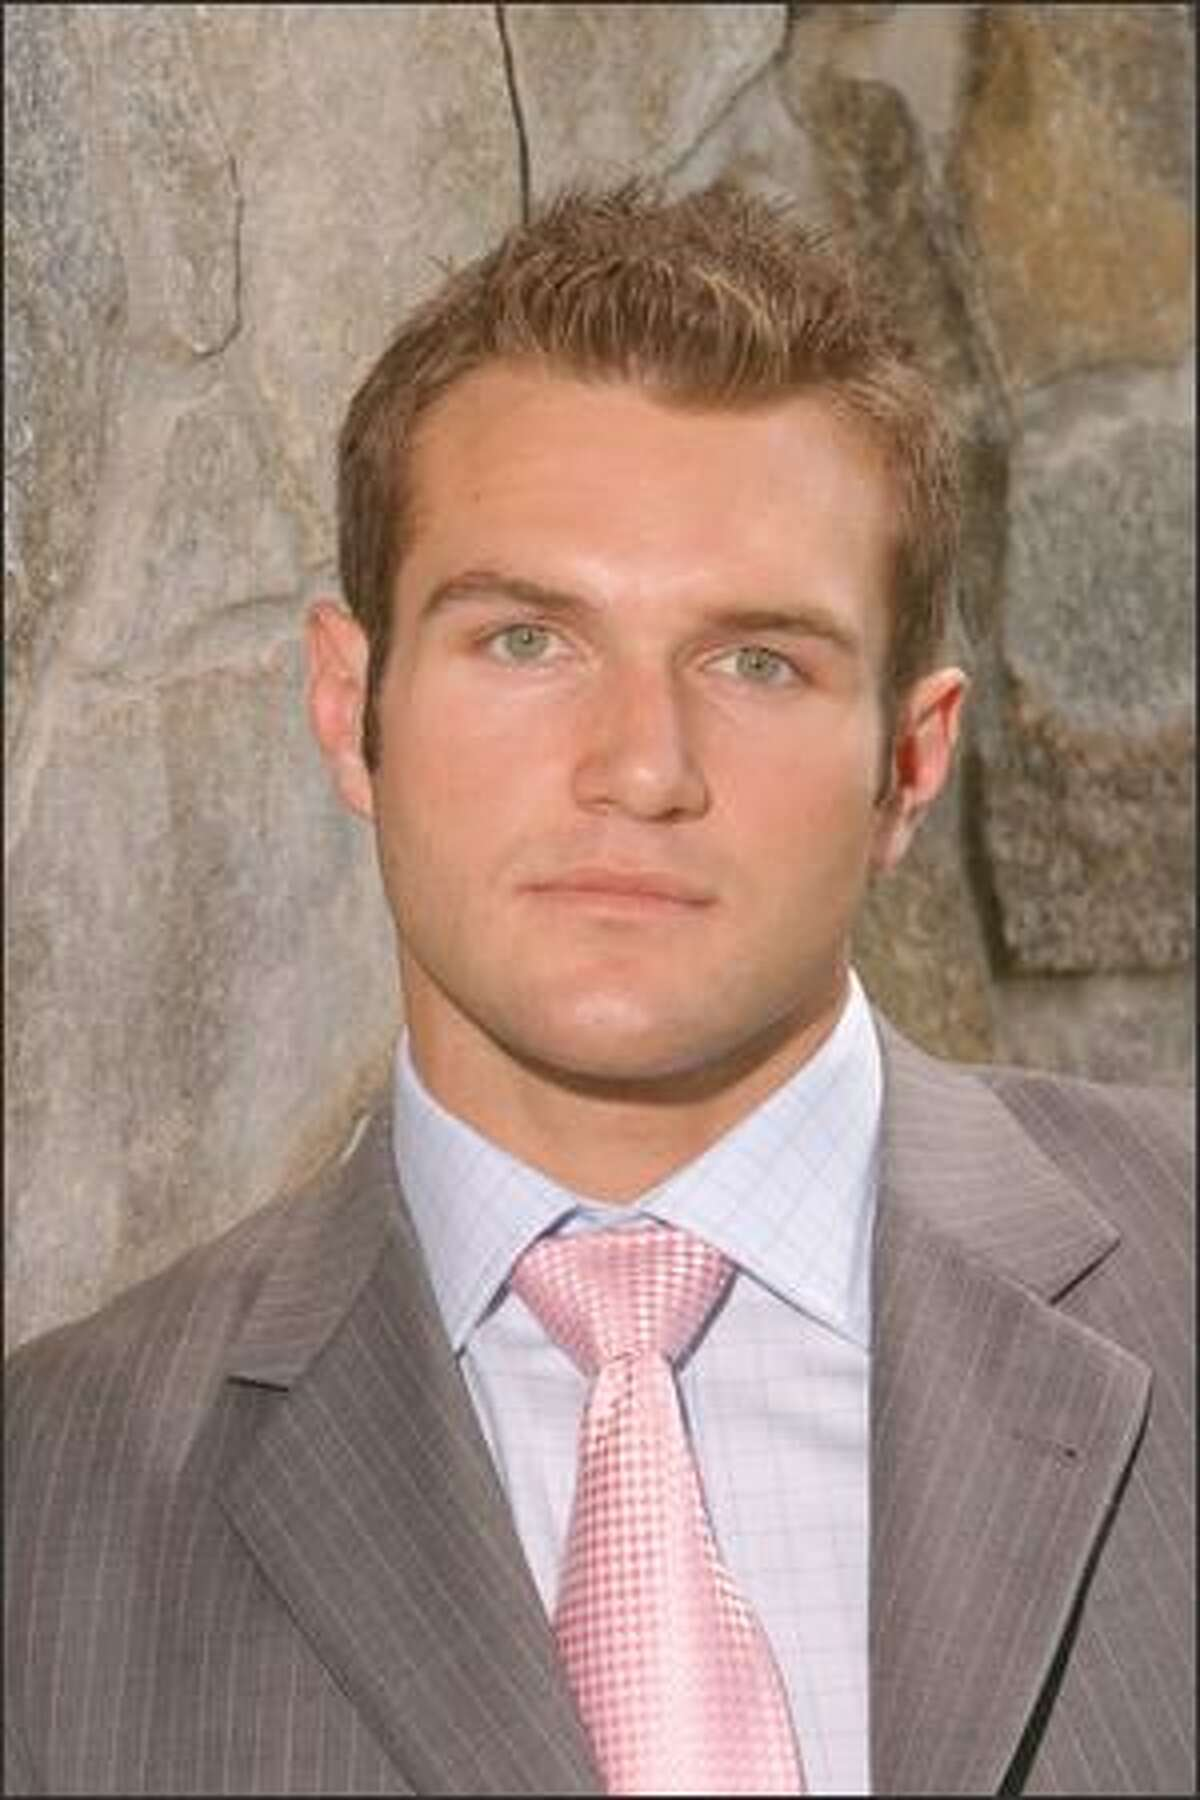 John Willenborg, 30, marketing director, San Francisco: John graduated from the University of California at Berkeley in 2003. While at Cal, John won three division one national titles in rugby. After graduation, John submitted a business plan to an Automotive Magazine, The Rodder's Journal, where he was then hired as marketing director. John also co-founded a real estate development company in San Francisco, and is currently in the midst of a number of projects. When not at the office, John spends the majority of his free time with his other passion, auto racing.